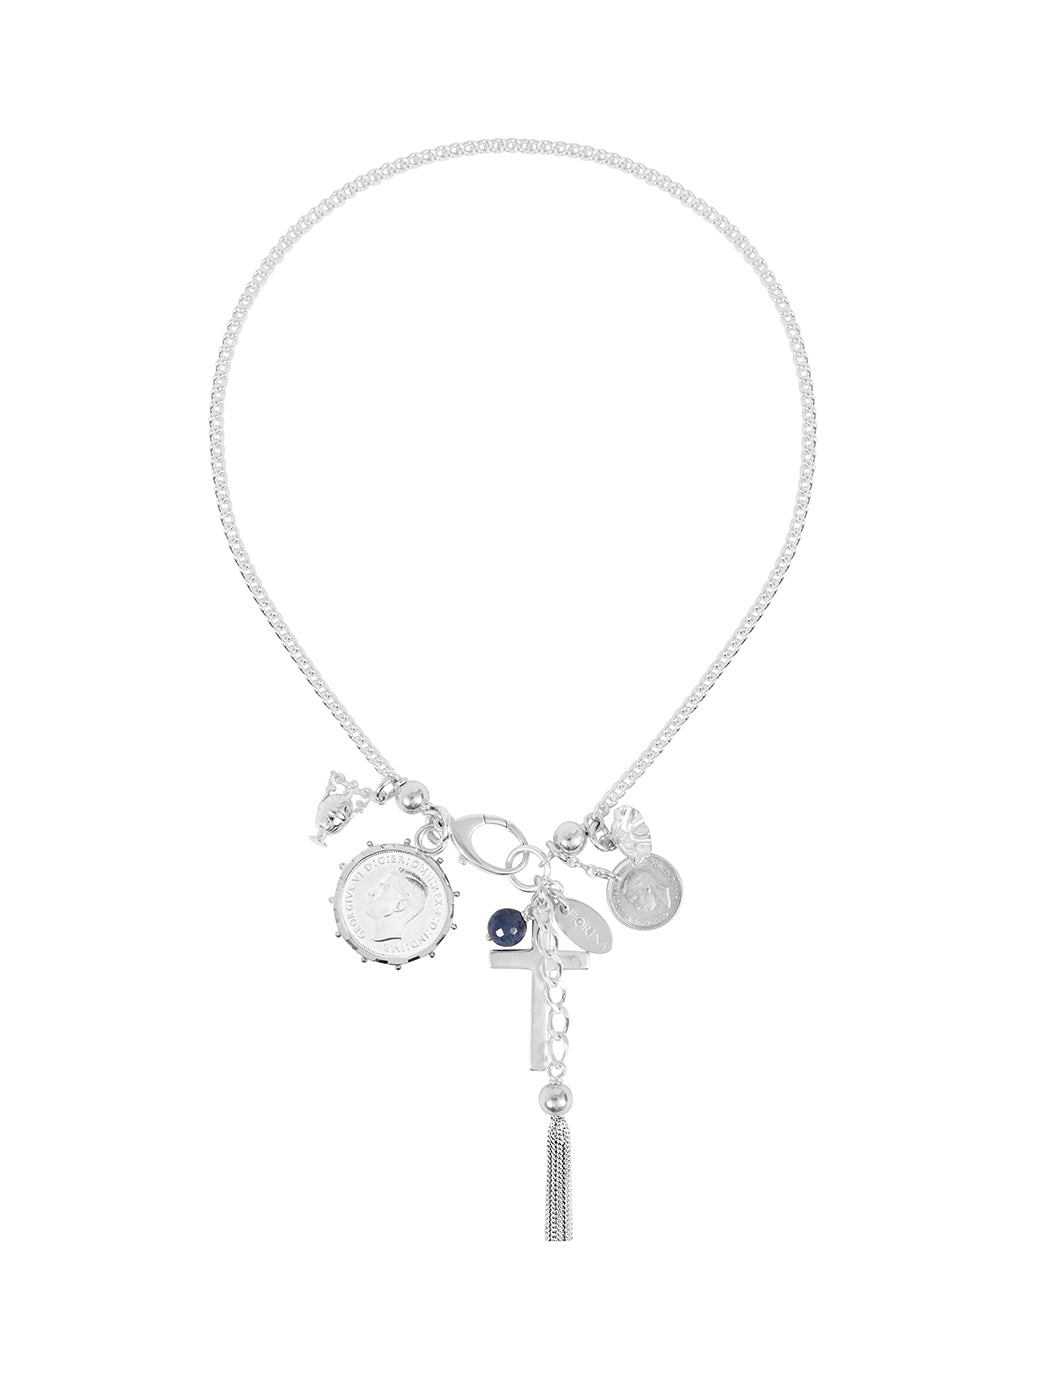 Fiorina Jewellery Fortuna Necklace